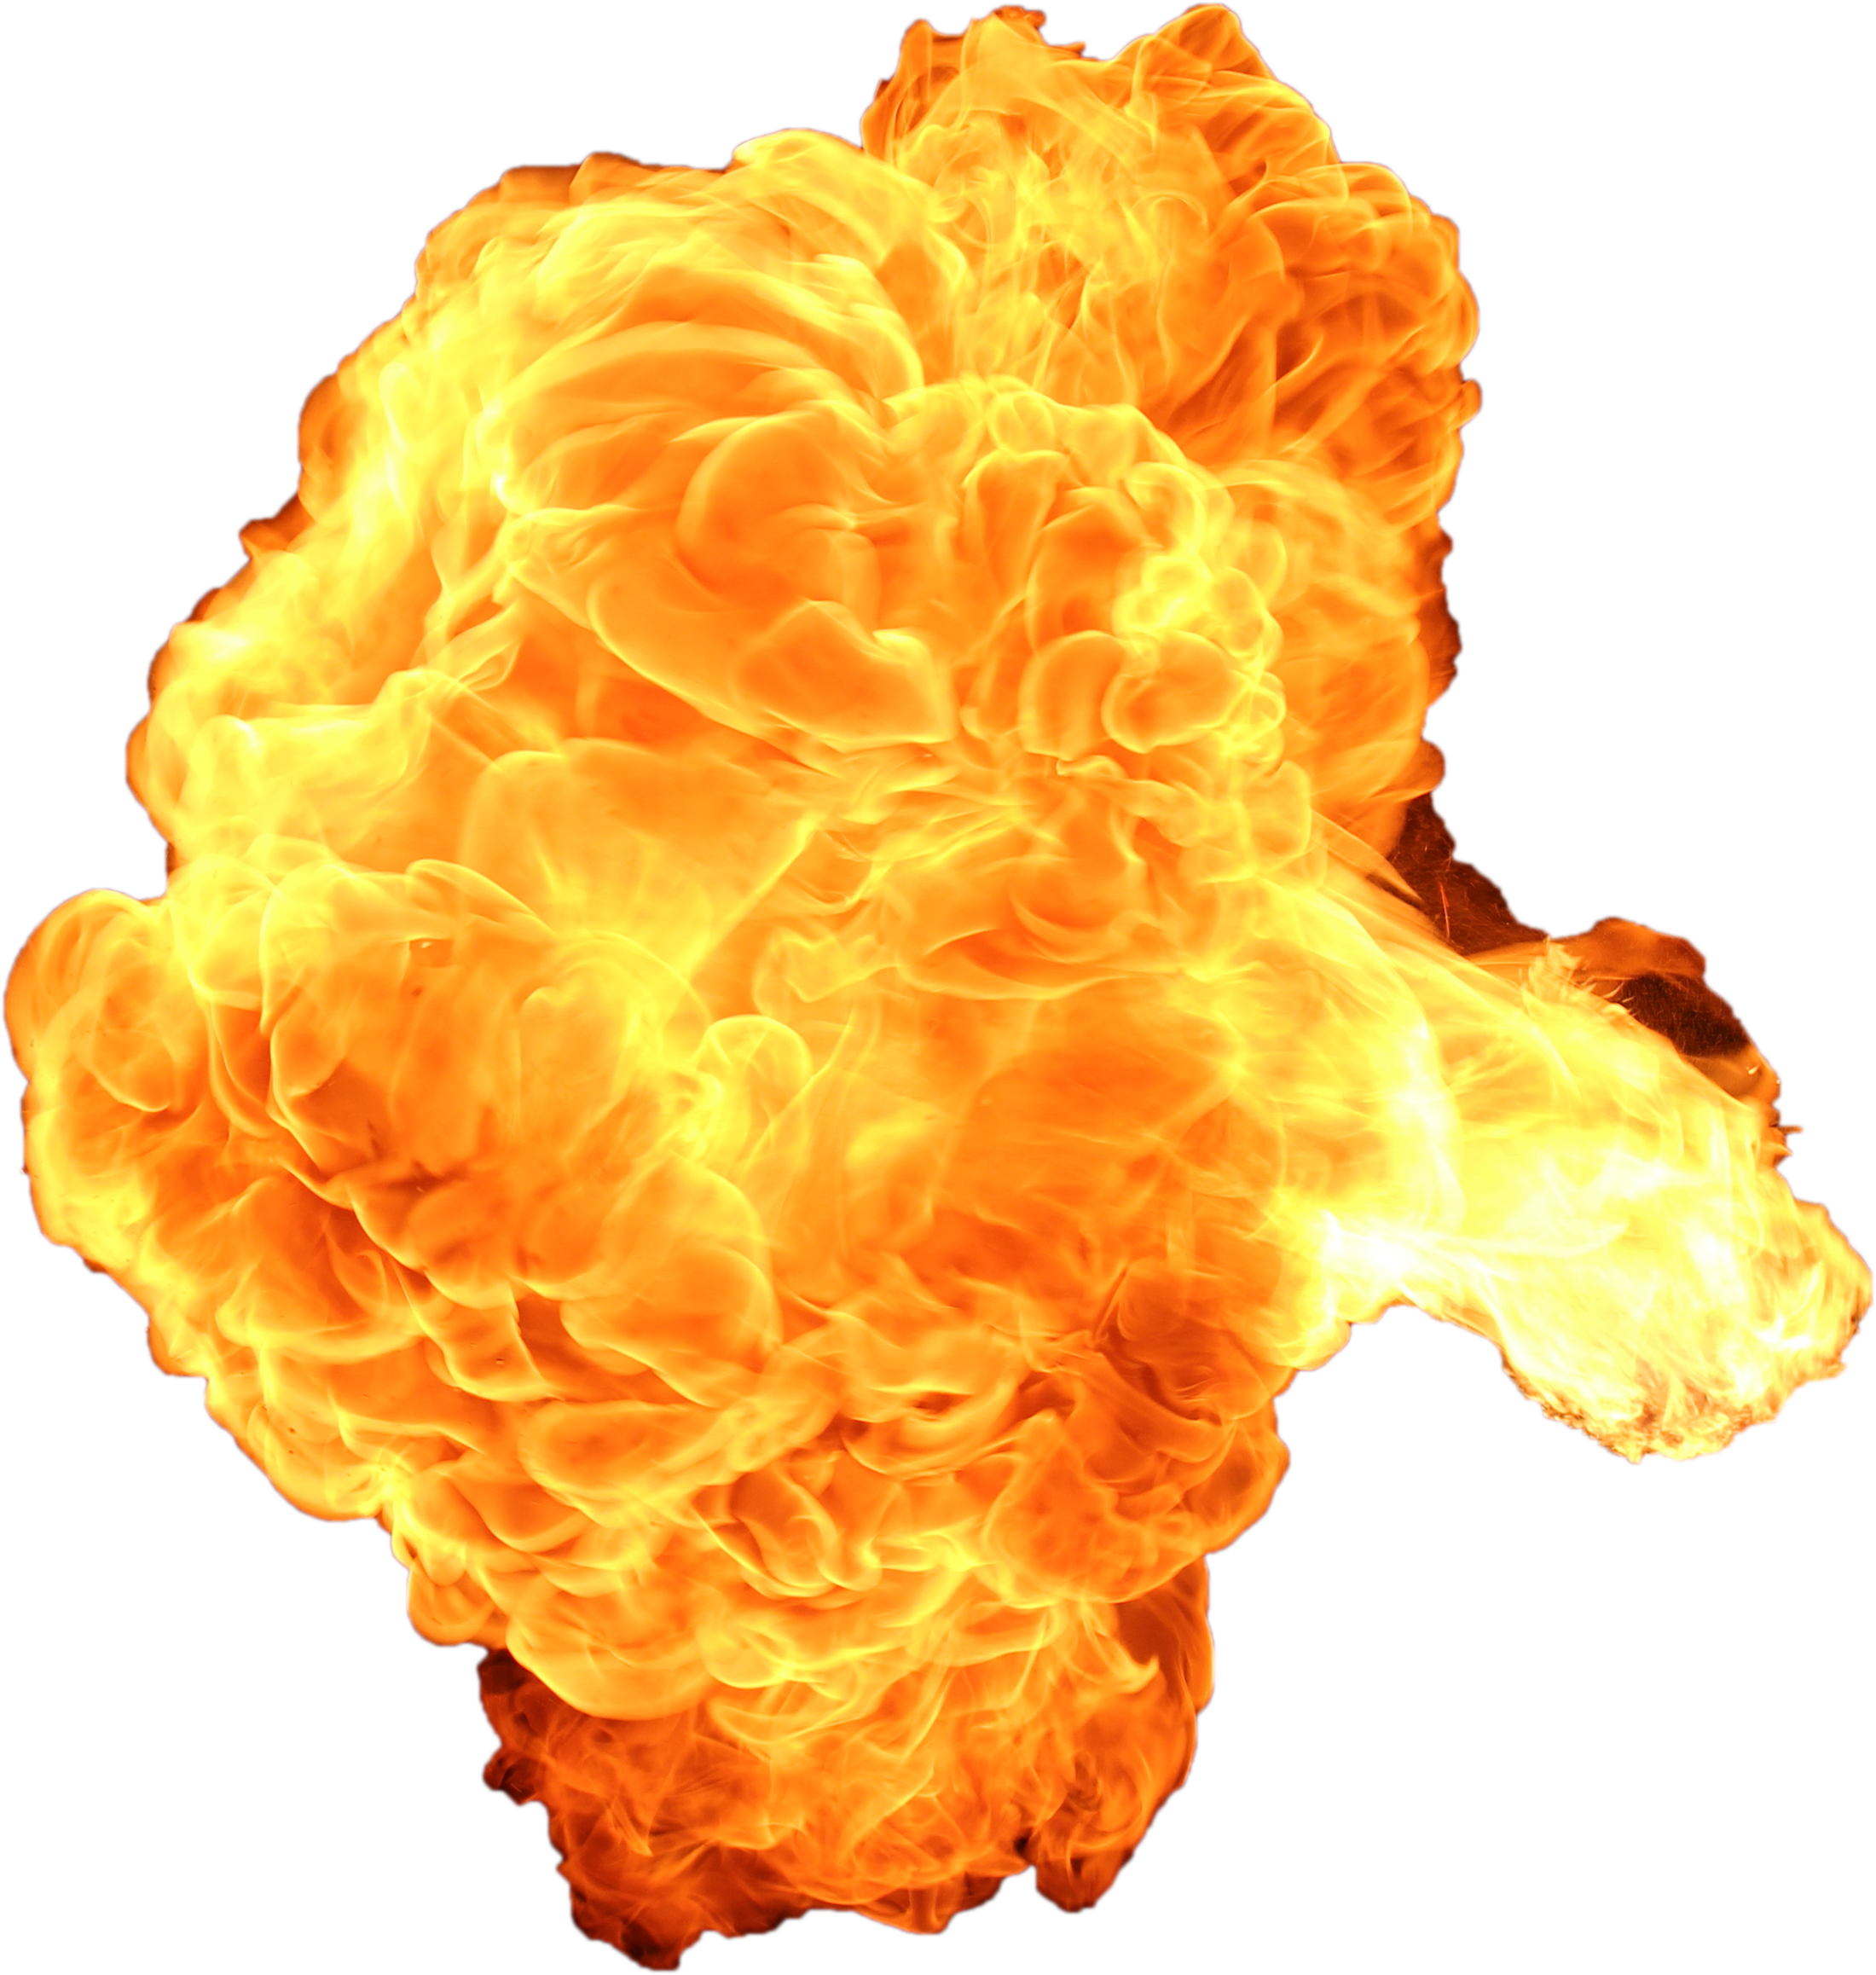 Big Explosion With Fire And Smoke Png Image Fire Image Fire Explosion